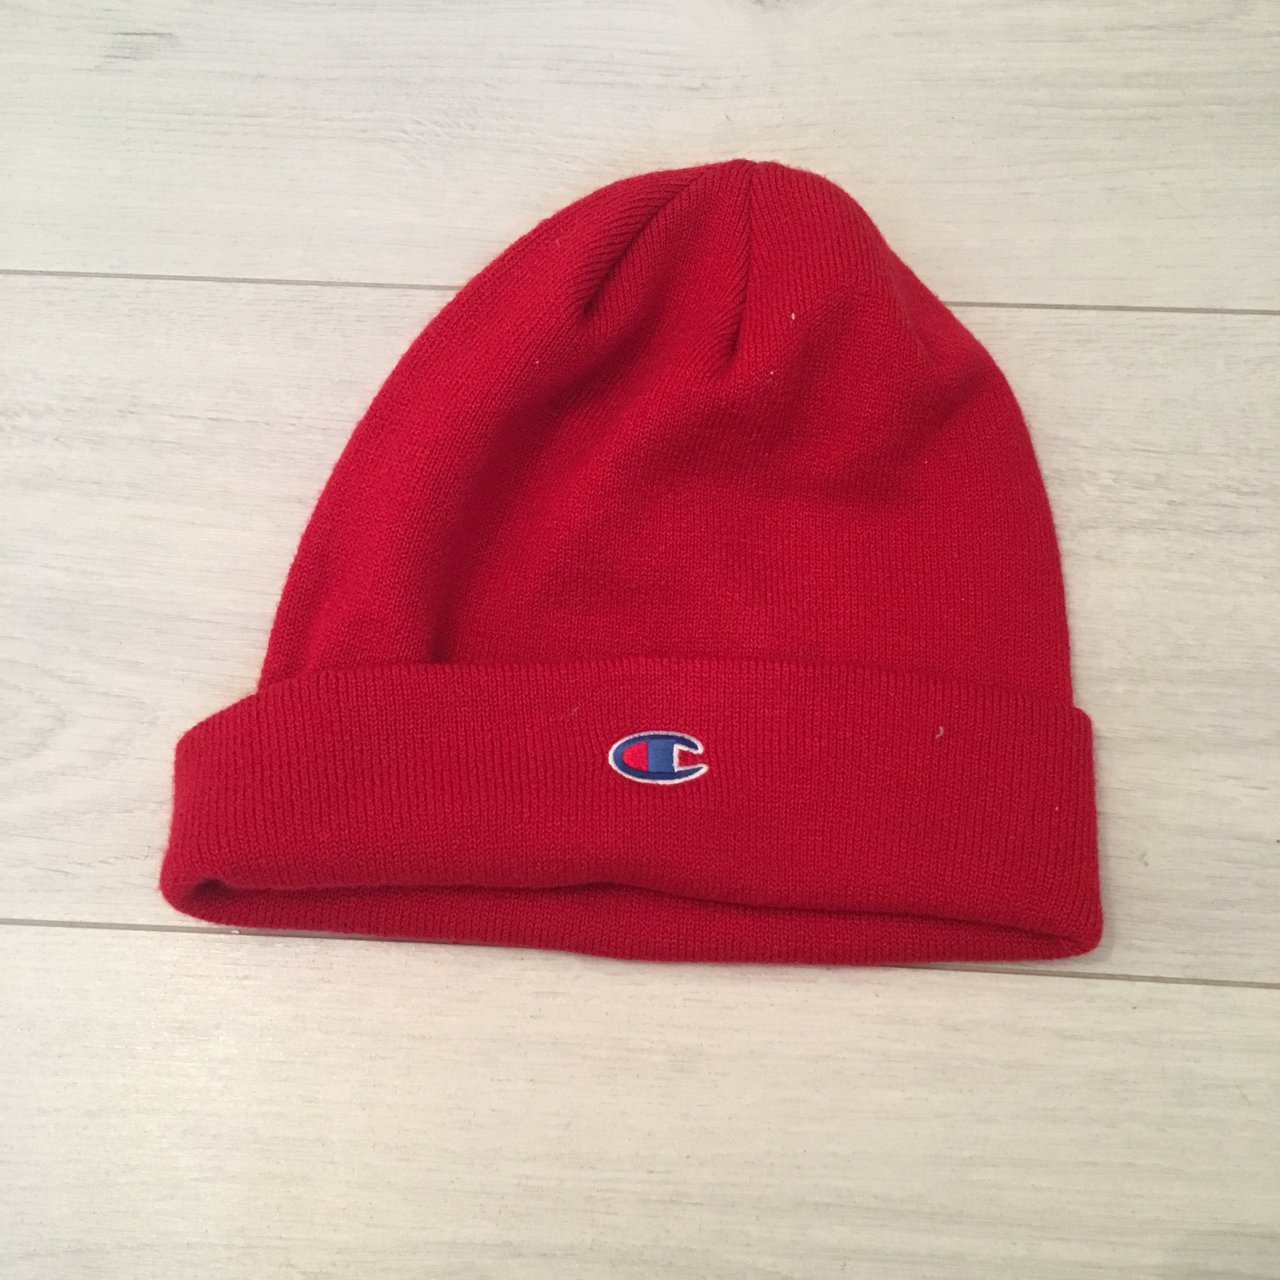 Red champion beanie Never been worn  champion  beanie  red - Depop f8e8f5d23ba